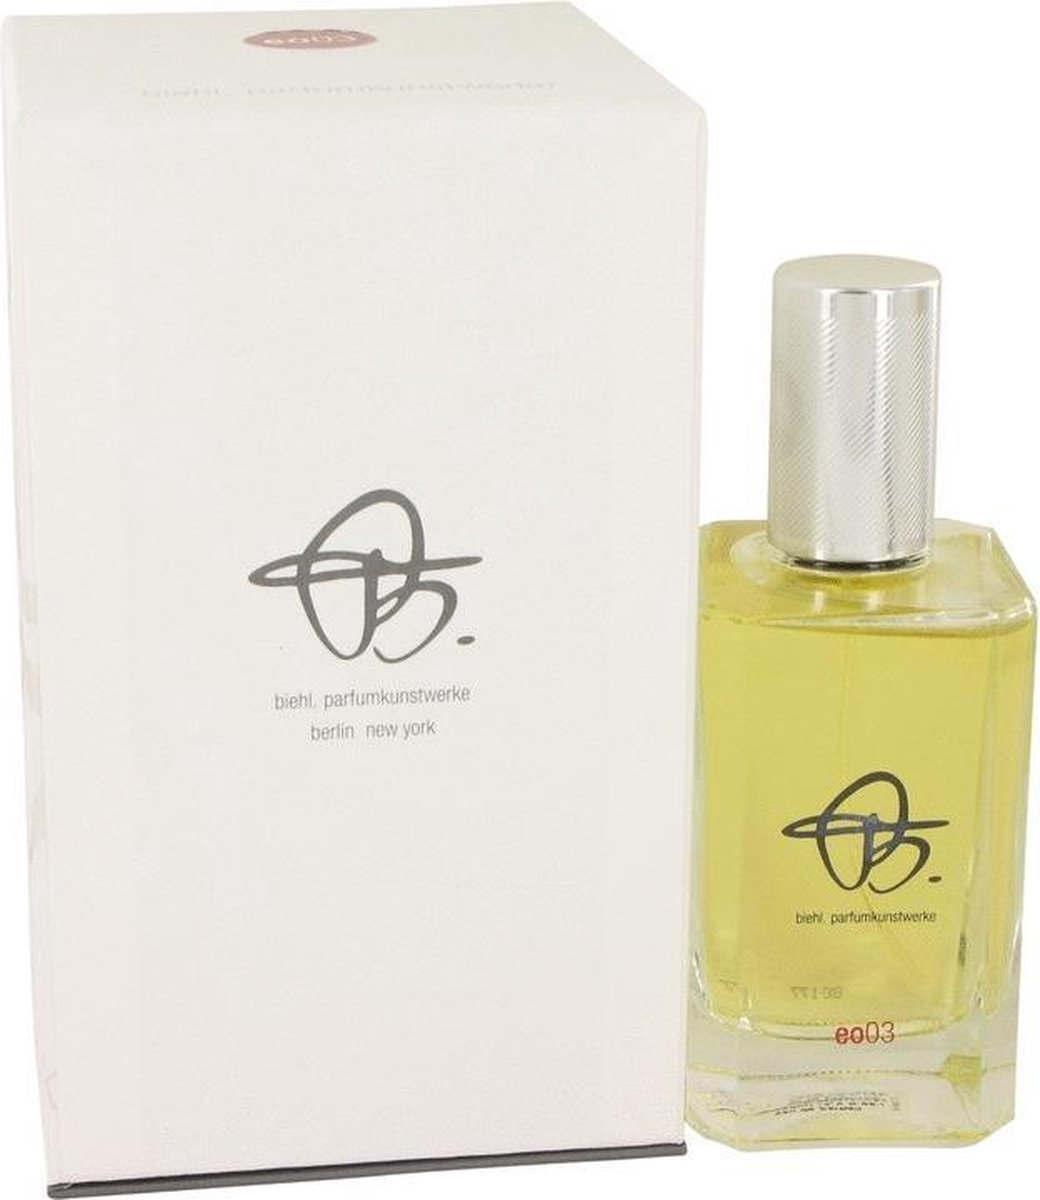 Eau De Parfum Spray (unisex) 3.5 oz